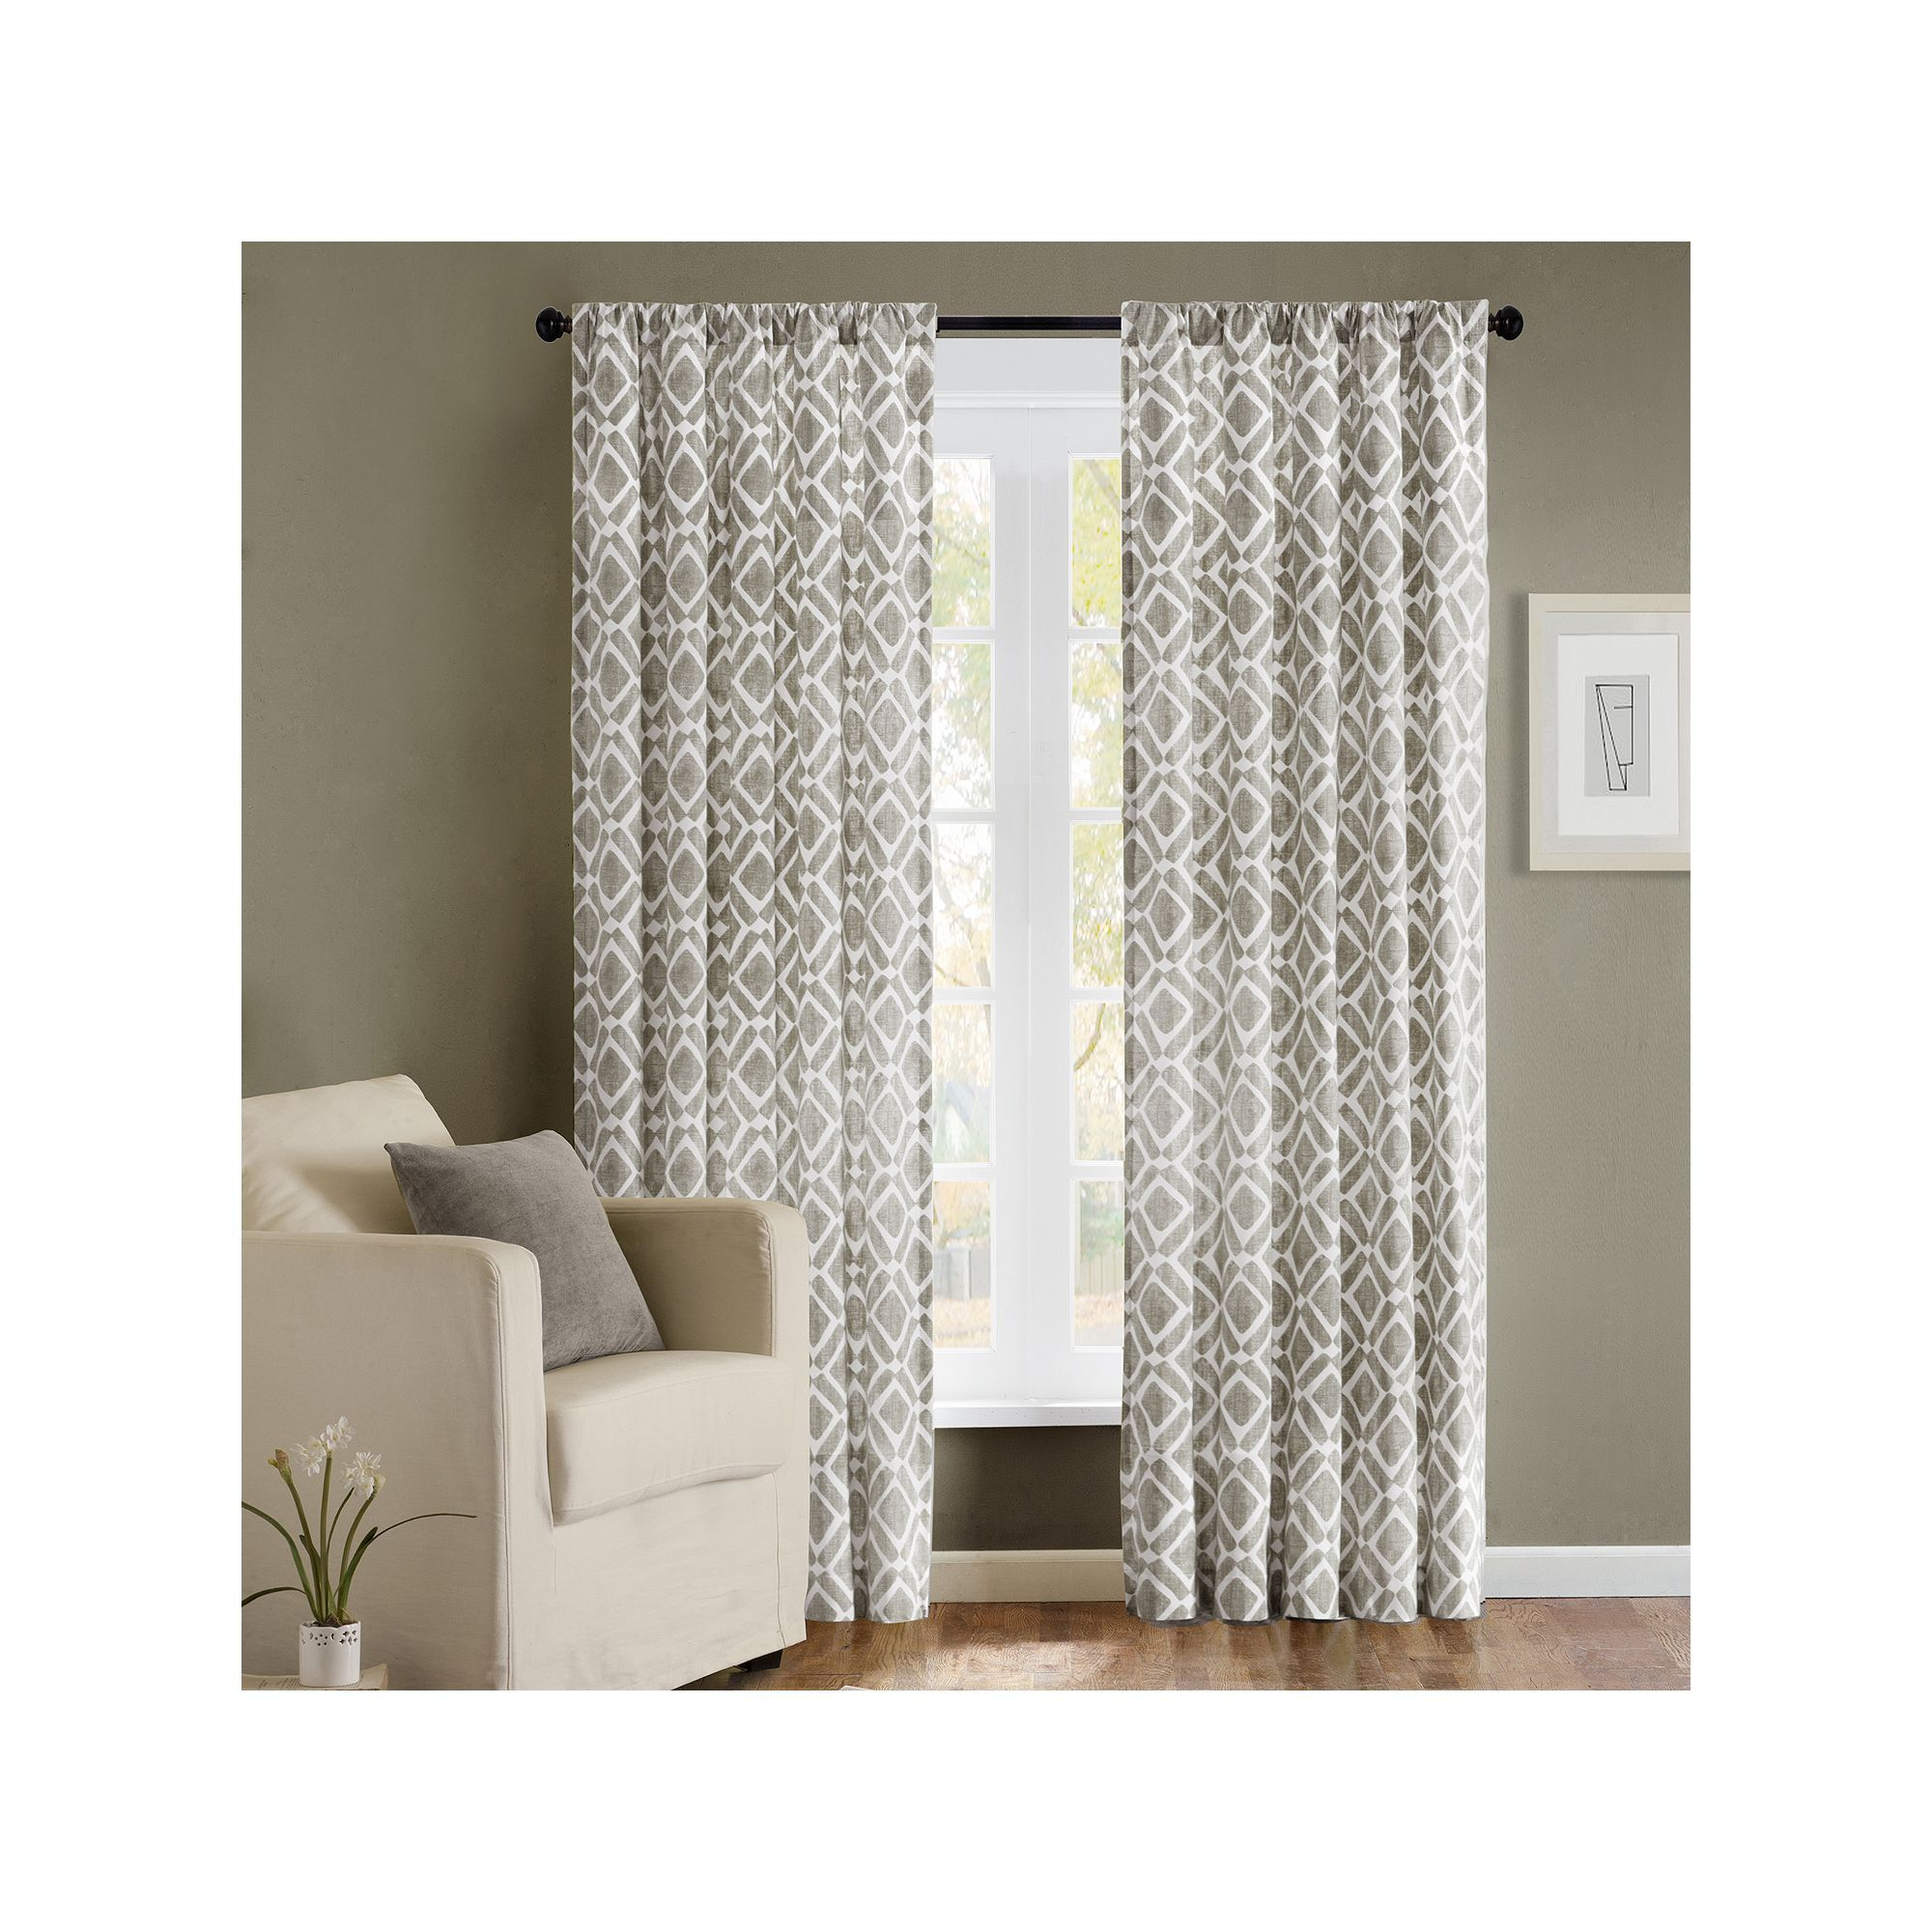 Madison Park 1 Panel Ella Window Curtain, Grey, 42x95 Pertaining To Ella Window Curtain Panels (View 2 of 20)